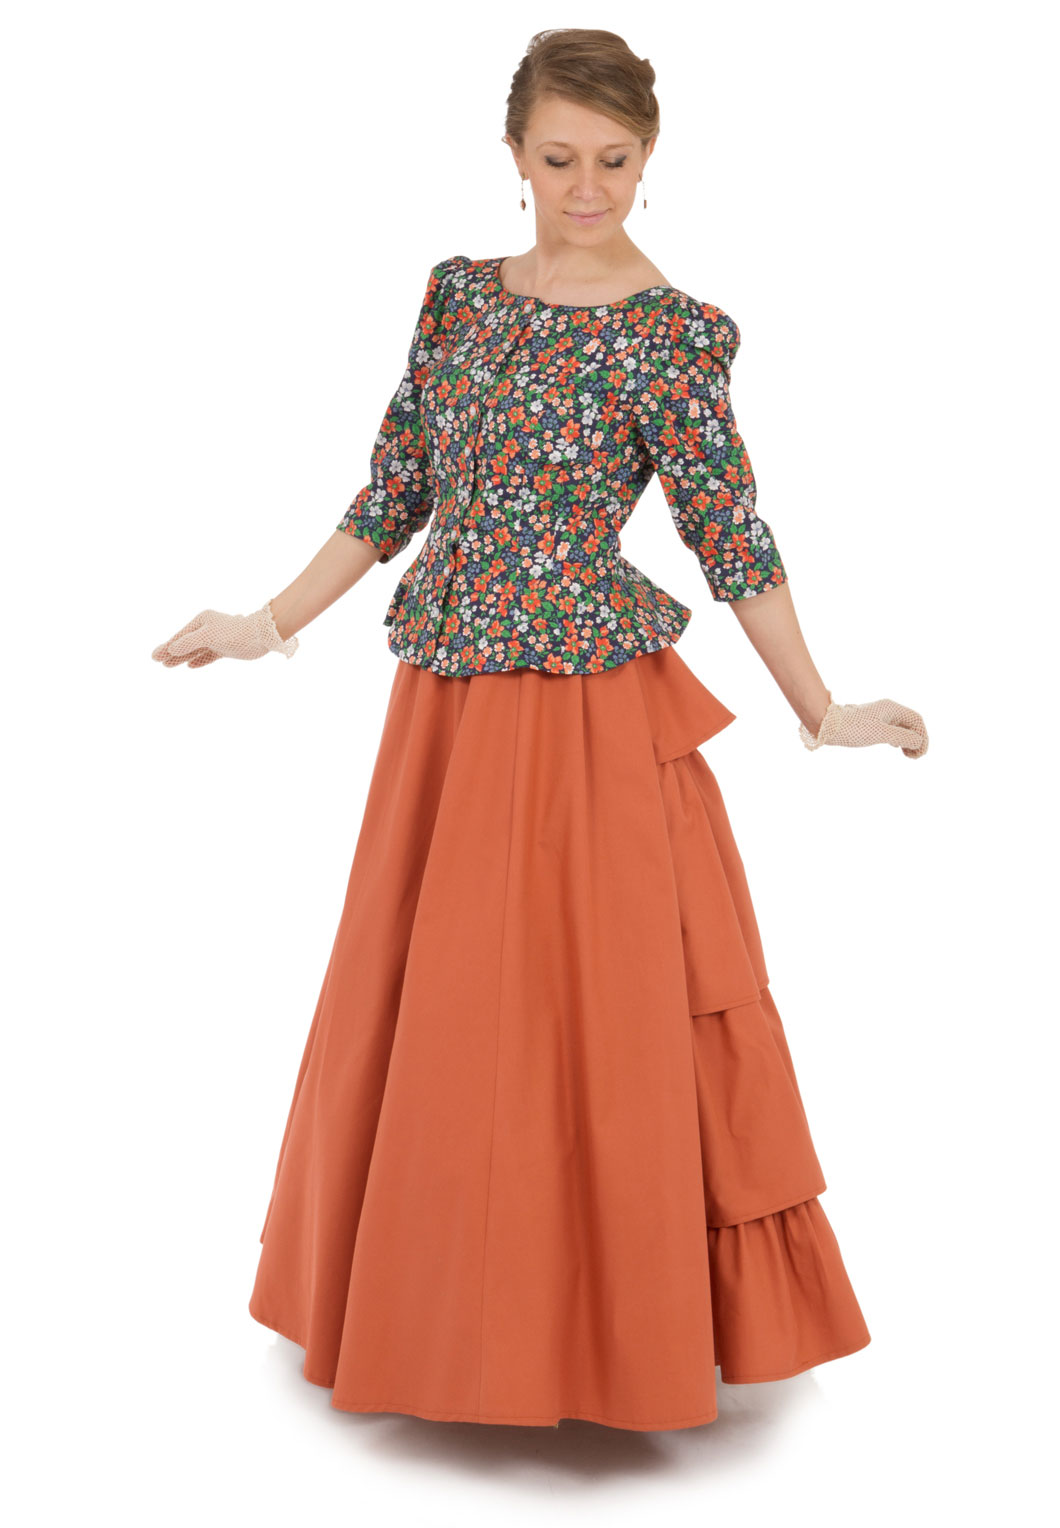 Sarah Ann Victorian Blouse and Skirt | Recollections